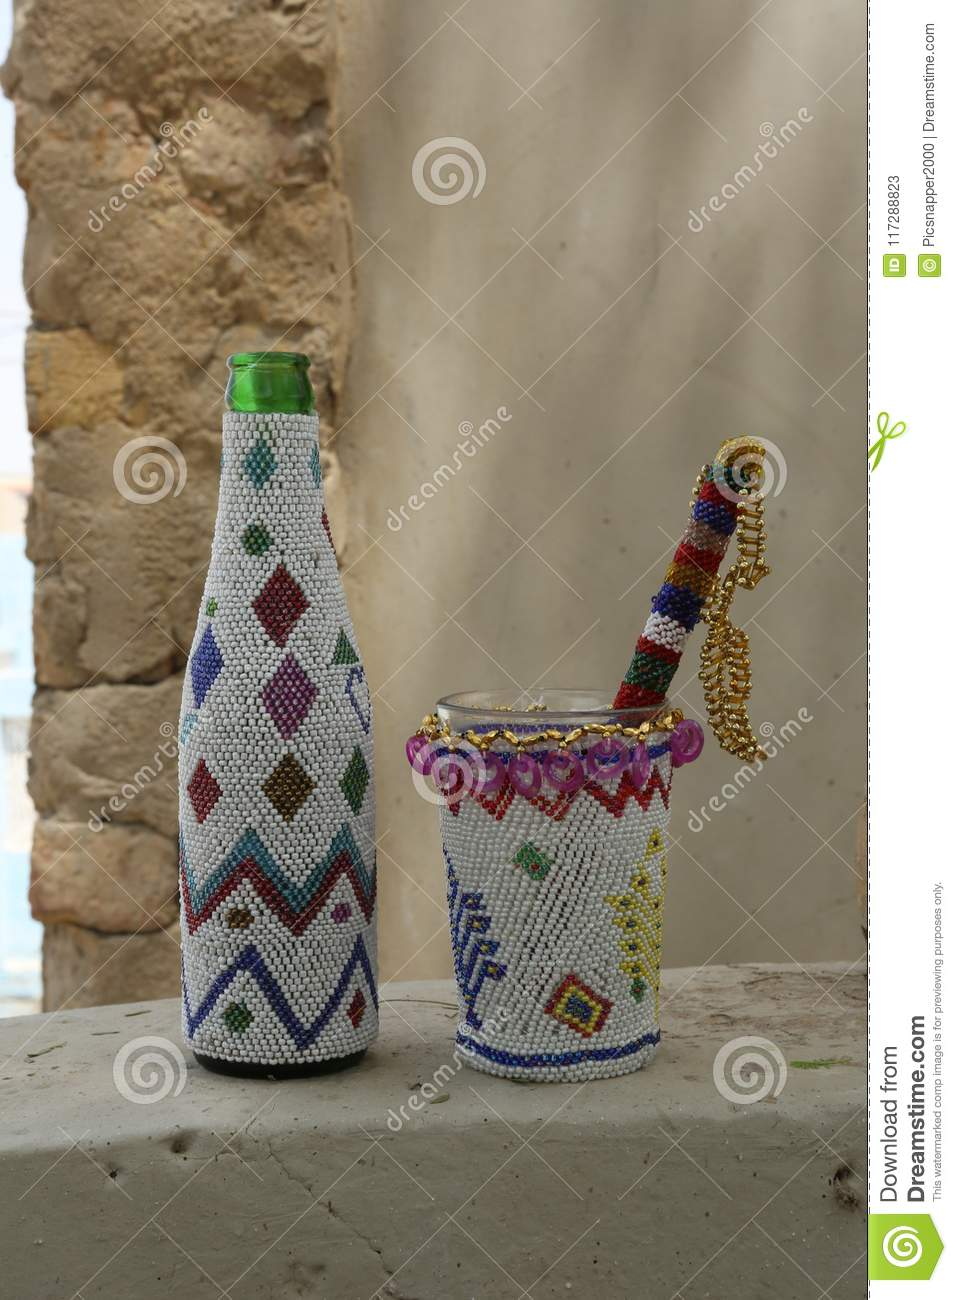 Sindhi Artisan Handicrafts Beaded Casings For Bottle And Mortar And